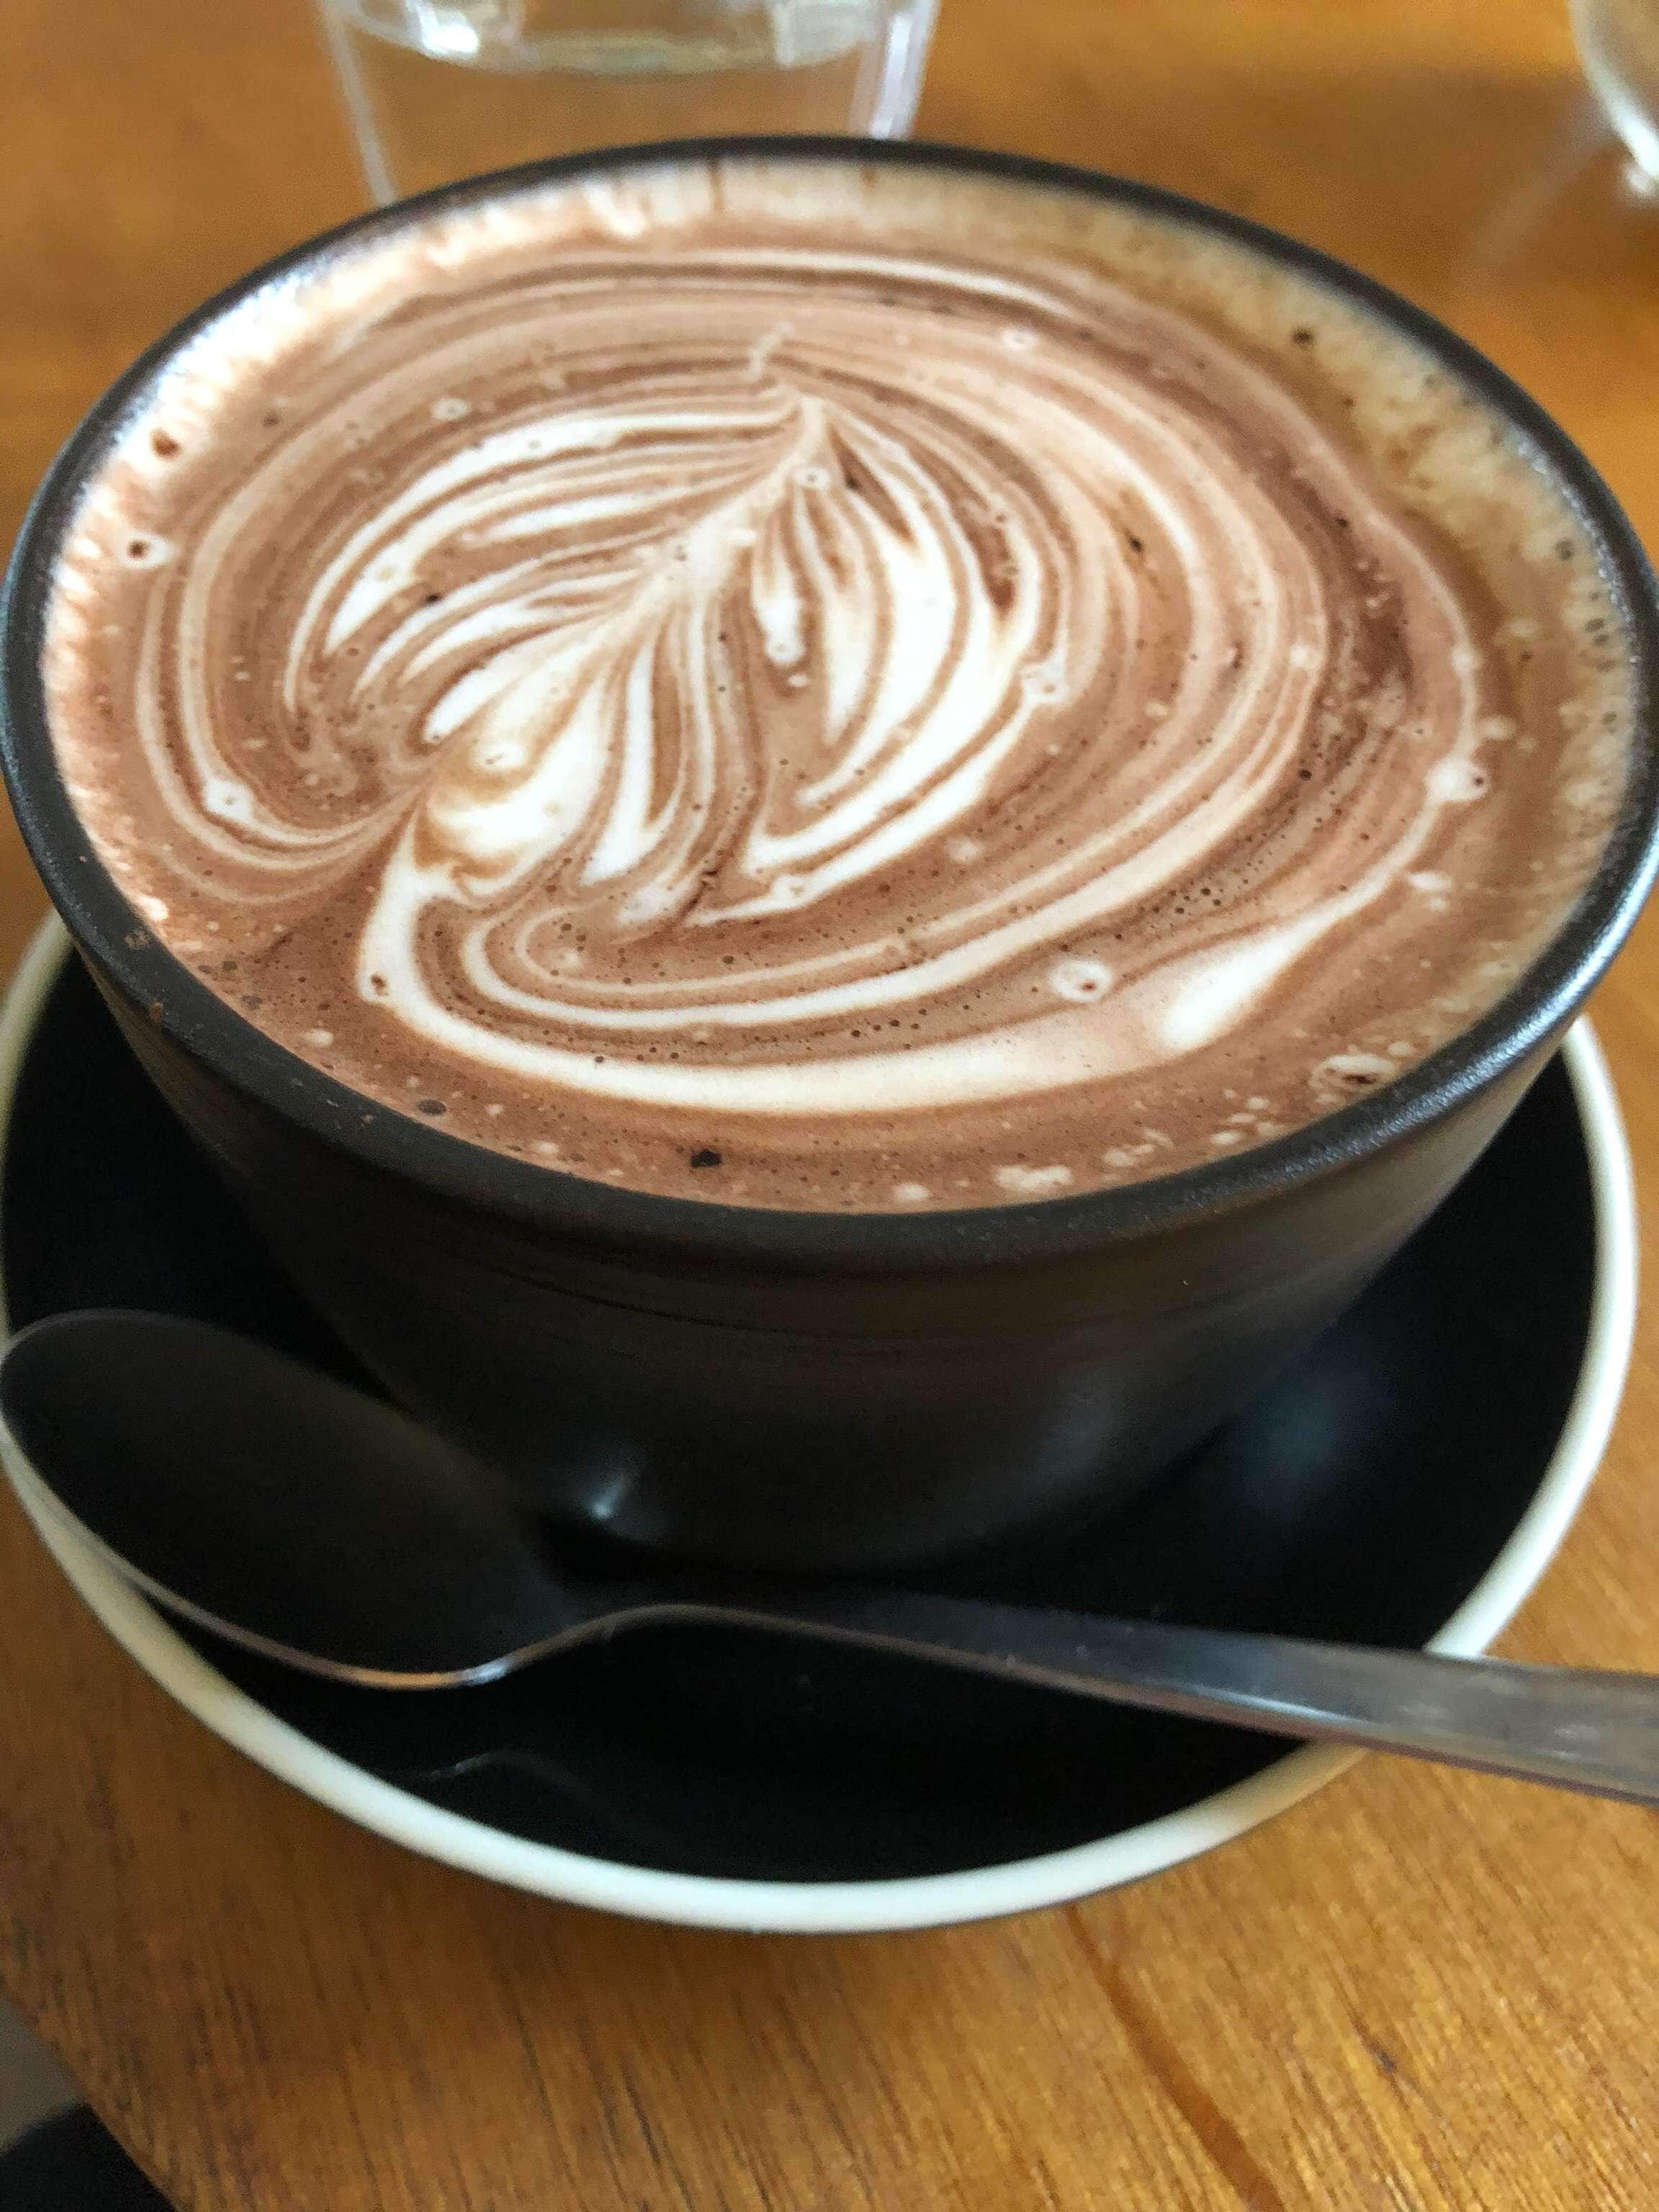 Cams Cafe @ St. Heliers Street Store & Gallery | 1-3 St Heliers Street, Abbotsford, Victoria 3067 | +61 3 9415 8022